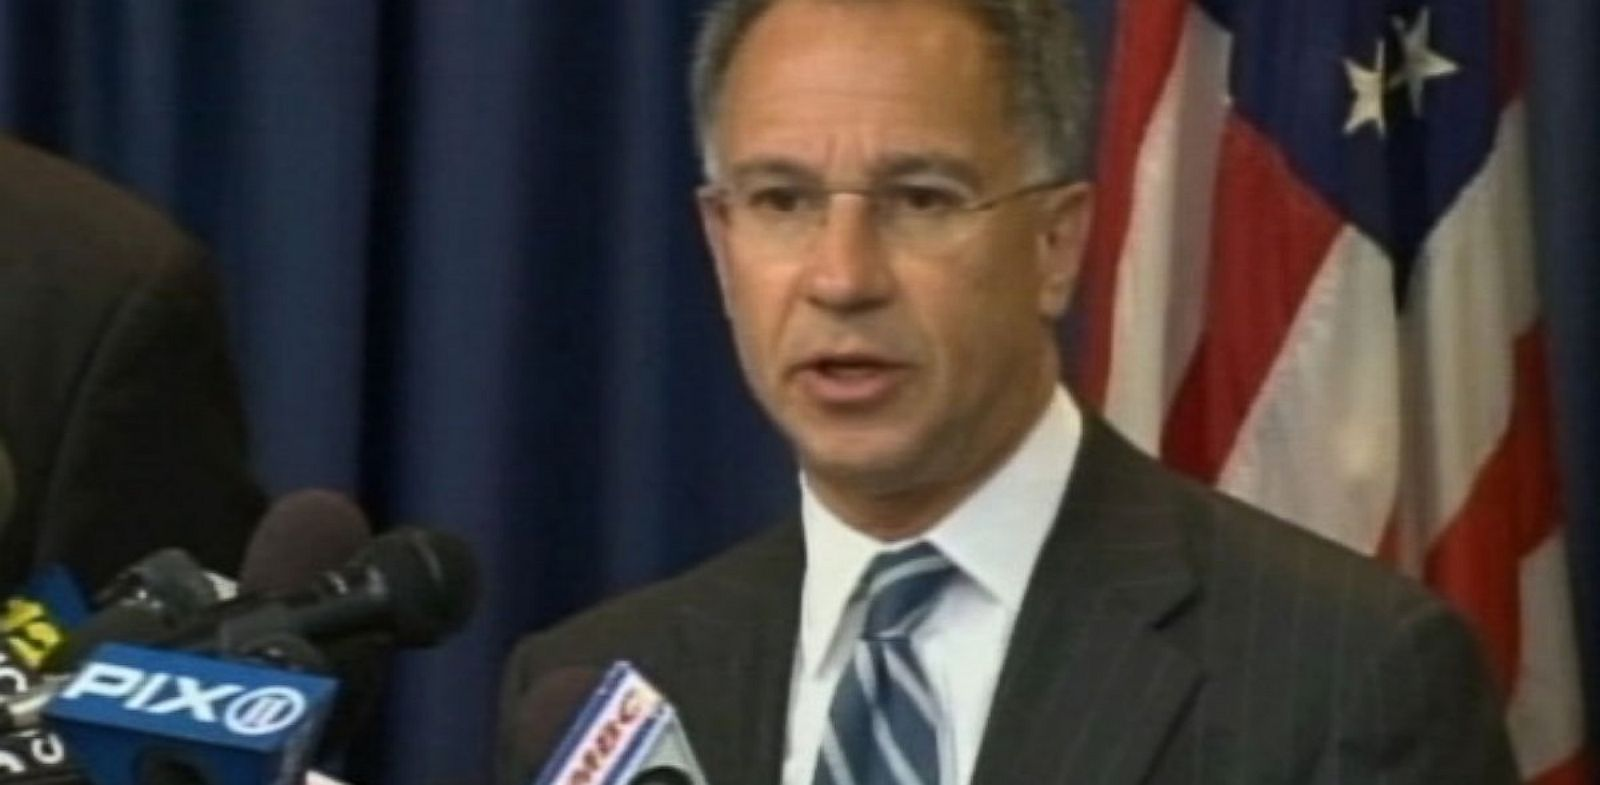 PHOTO: US Attorney Paul Fishman at a press conference on July 25, 2013 in Newark, New Jersey discussing the indictment of 4 Russians and 1 Ukranian in the largest breach of data in history.